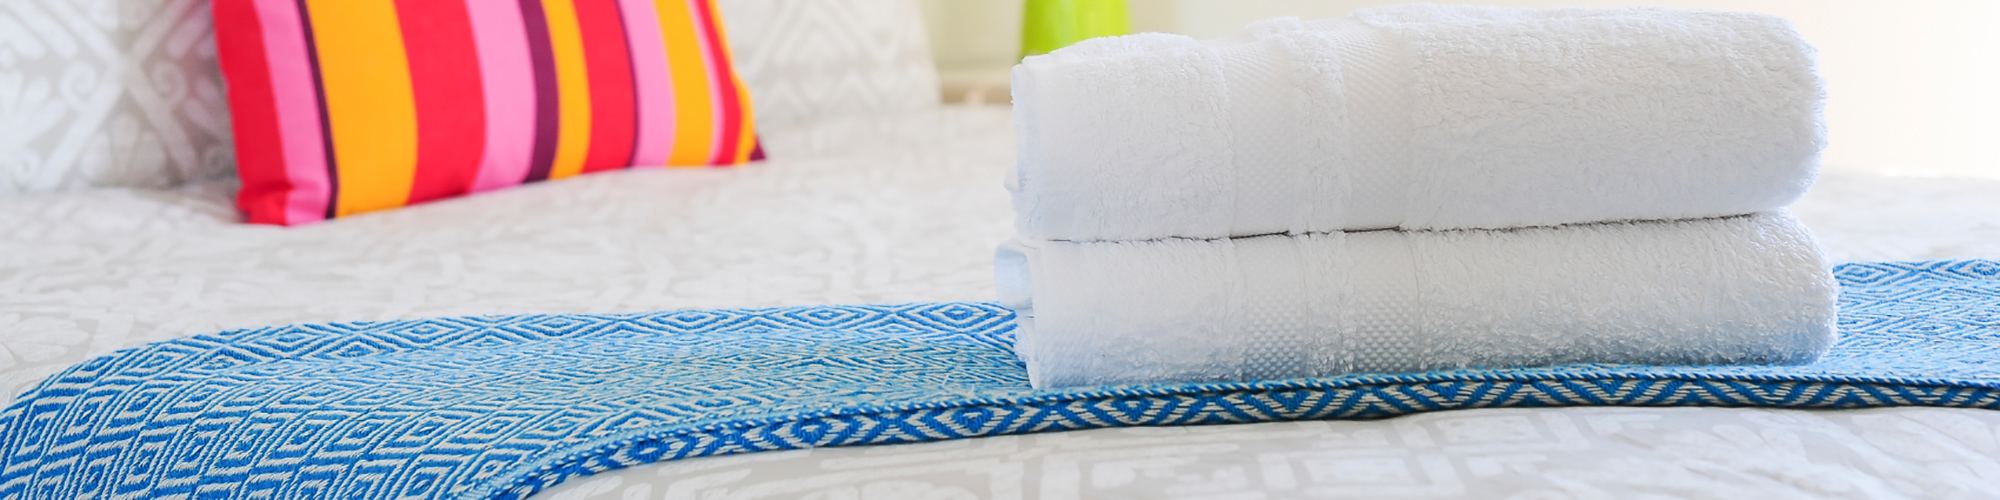 cotton-craft-towels-slider